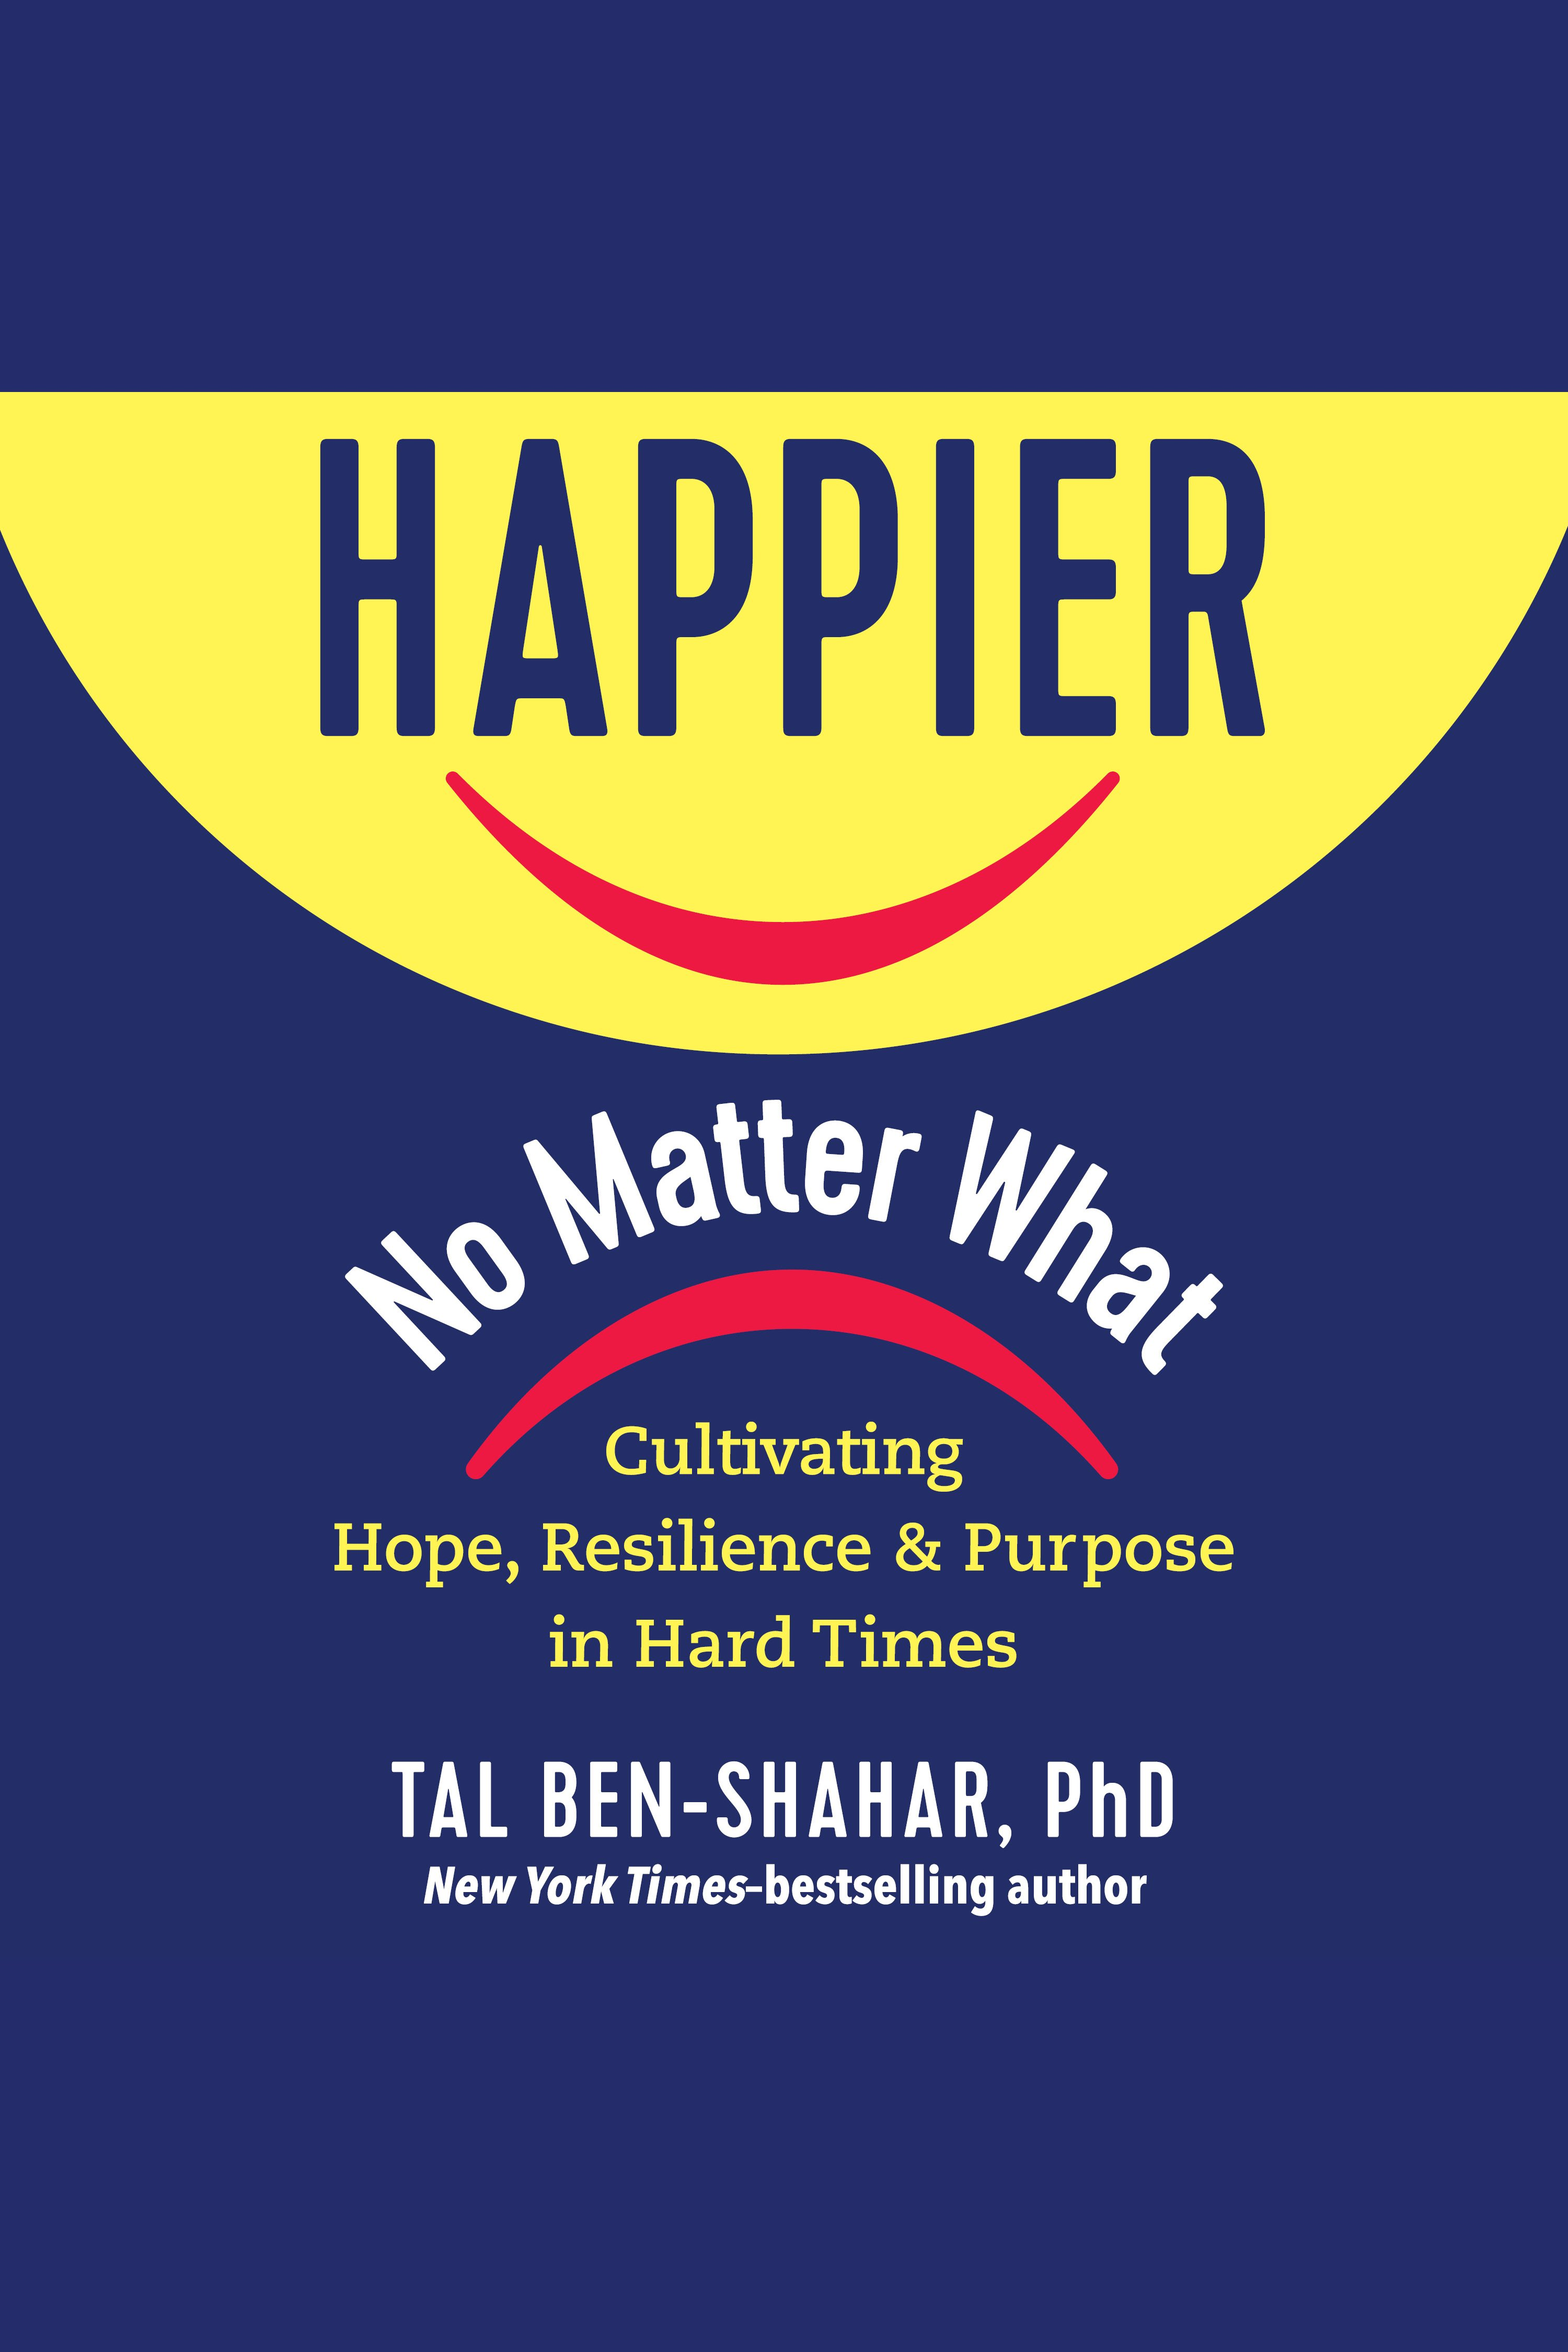 Happier, No Matter What Cultivating Hope, Resilience, and Purpose in Hard Times